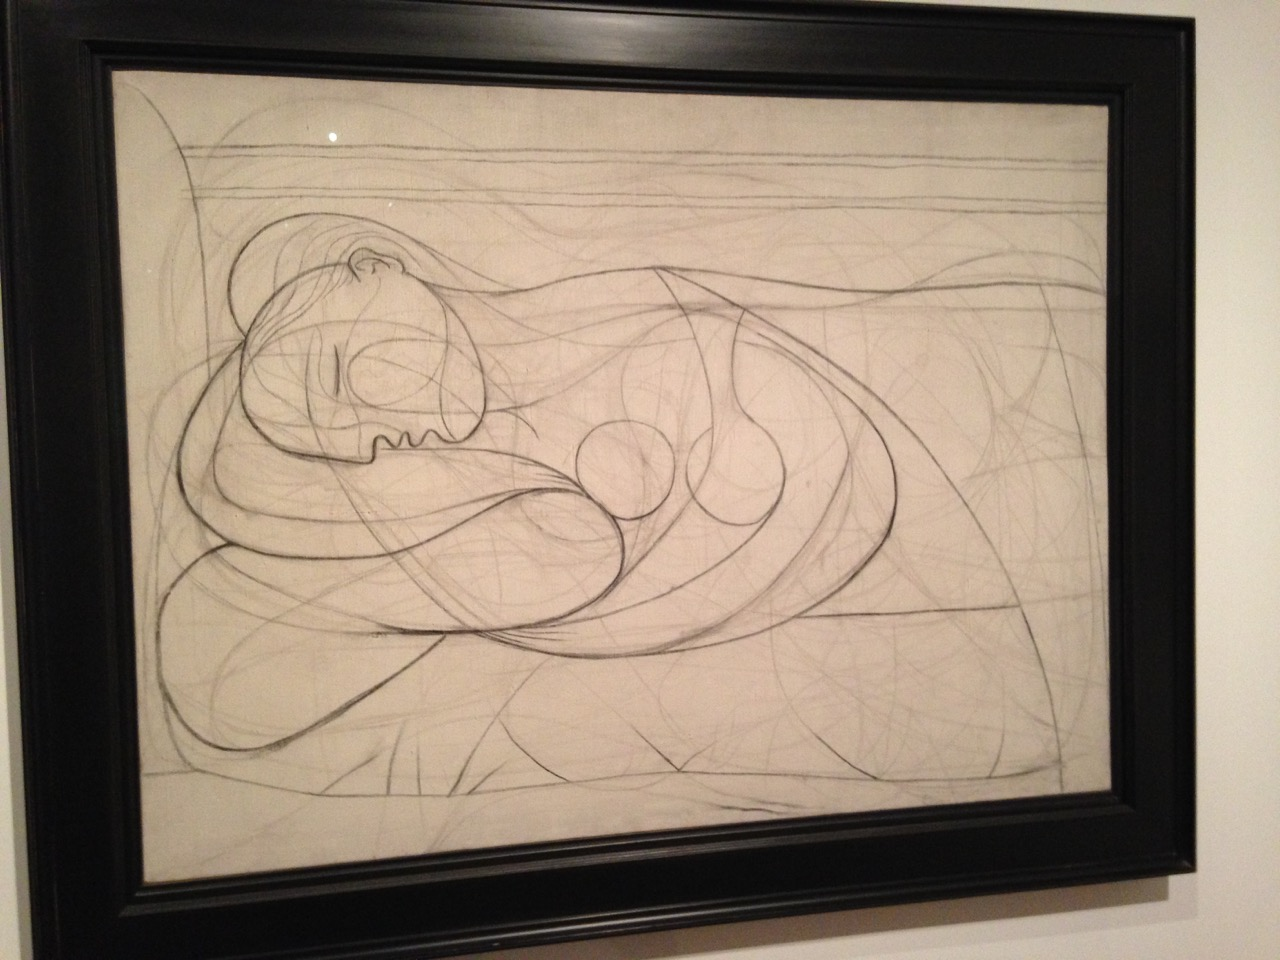 Picasso drawing.